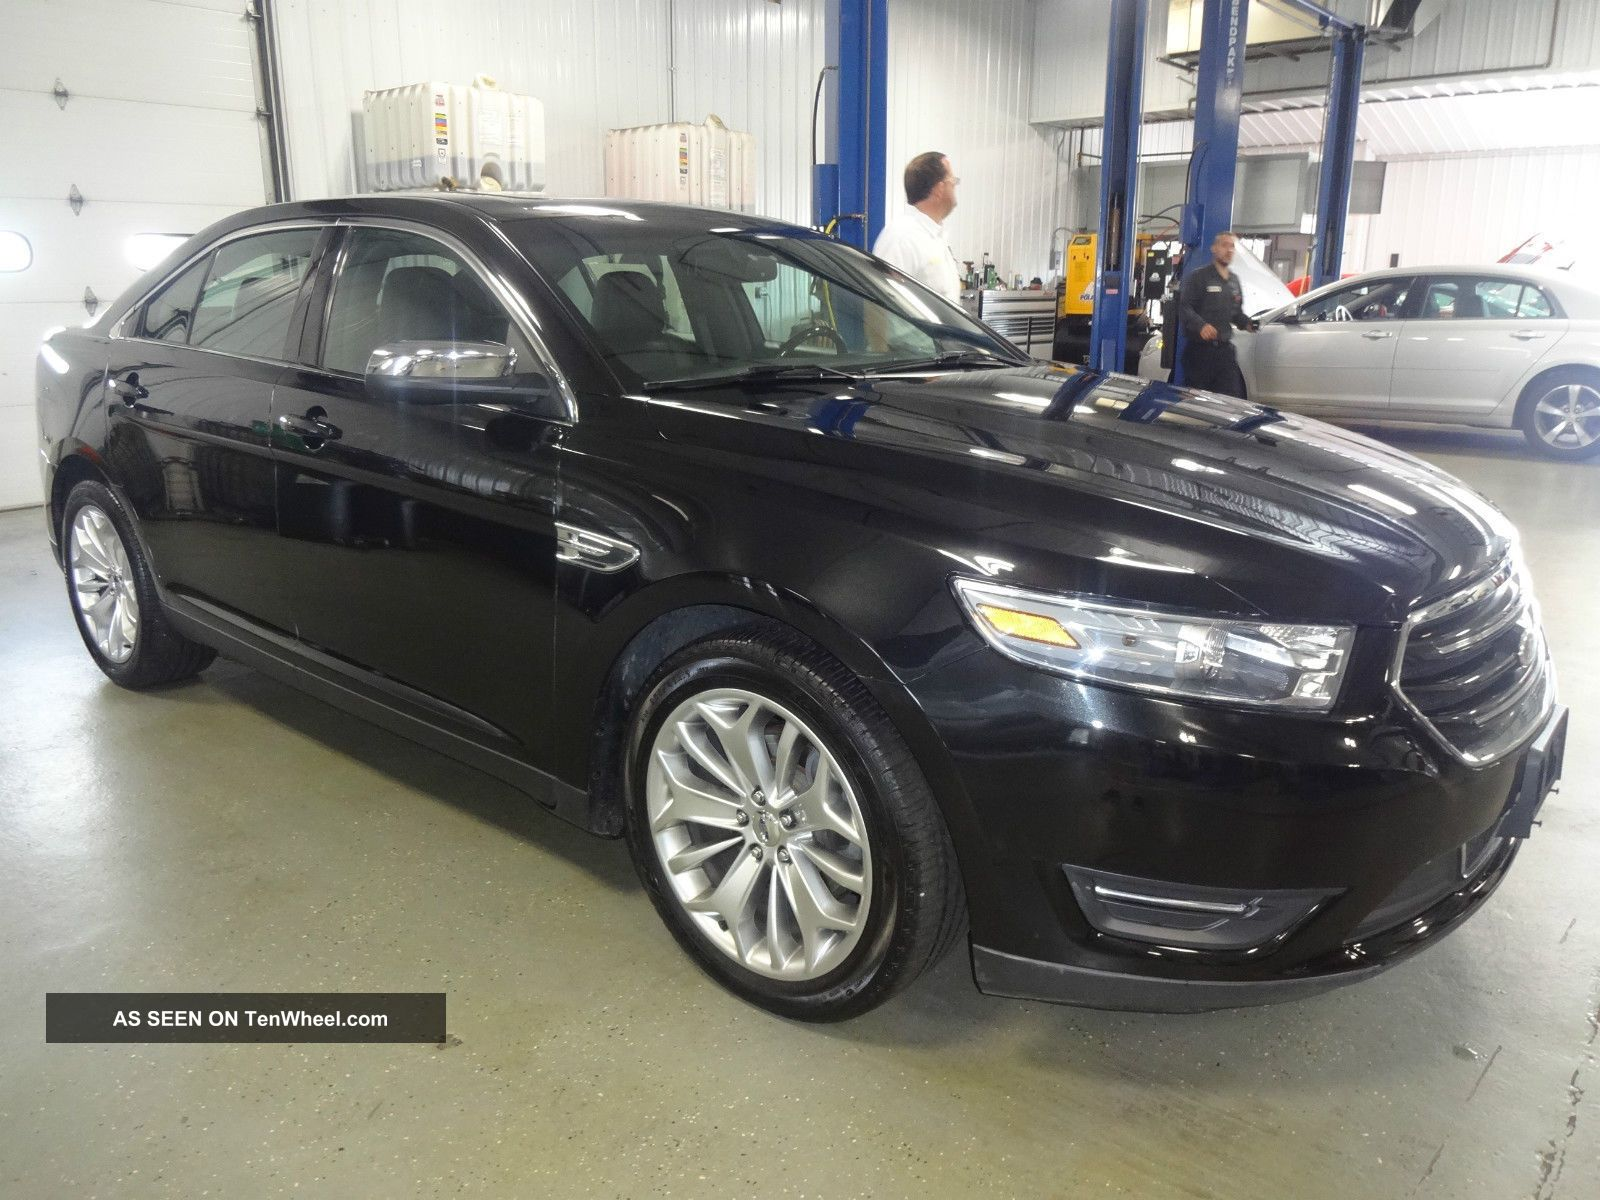 2013 ford taurus limited sedan 4 door 3 5l black taurus photo. Cars Review. Best American Auto & Cars Review